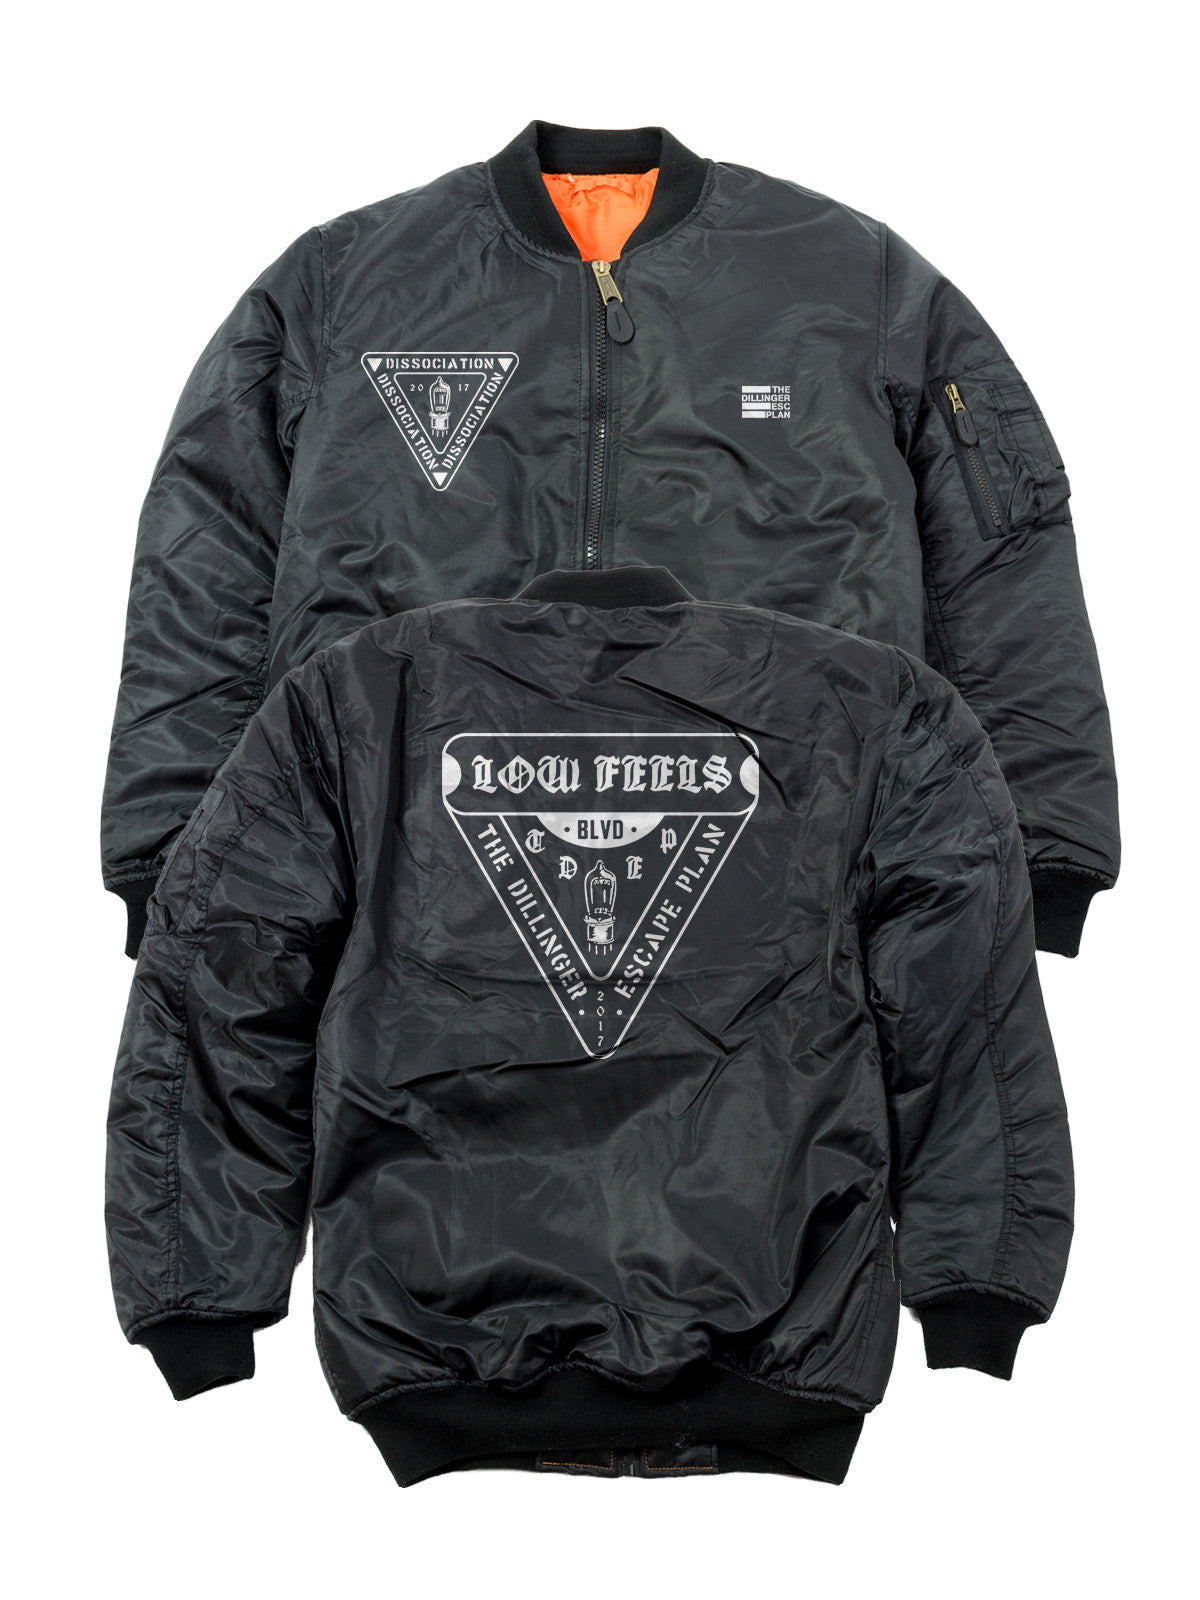 The Dillinger Escape Plan - Low Feels Bomber Jacket - Merch Limited